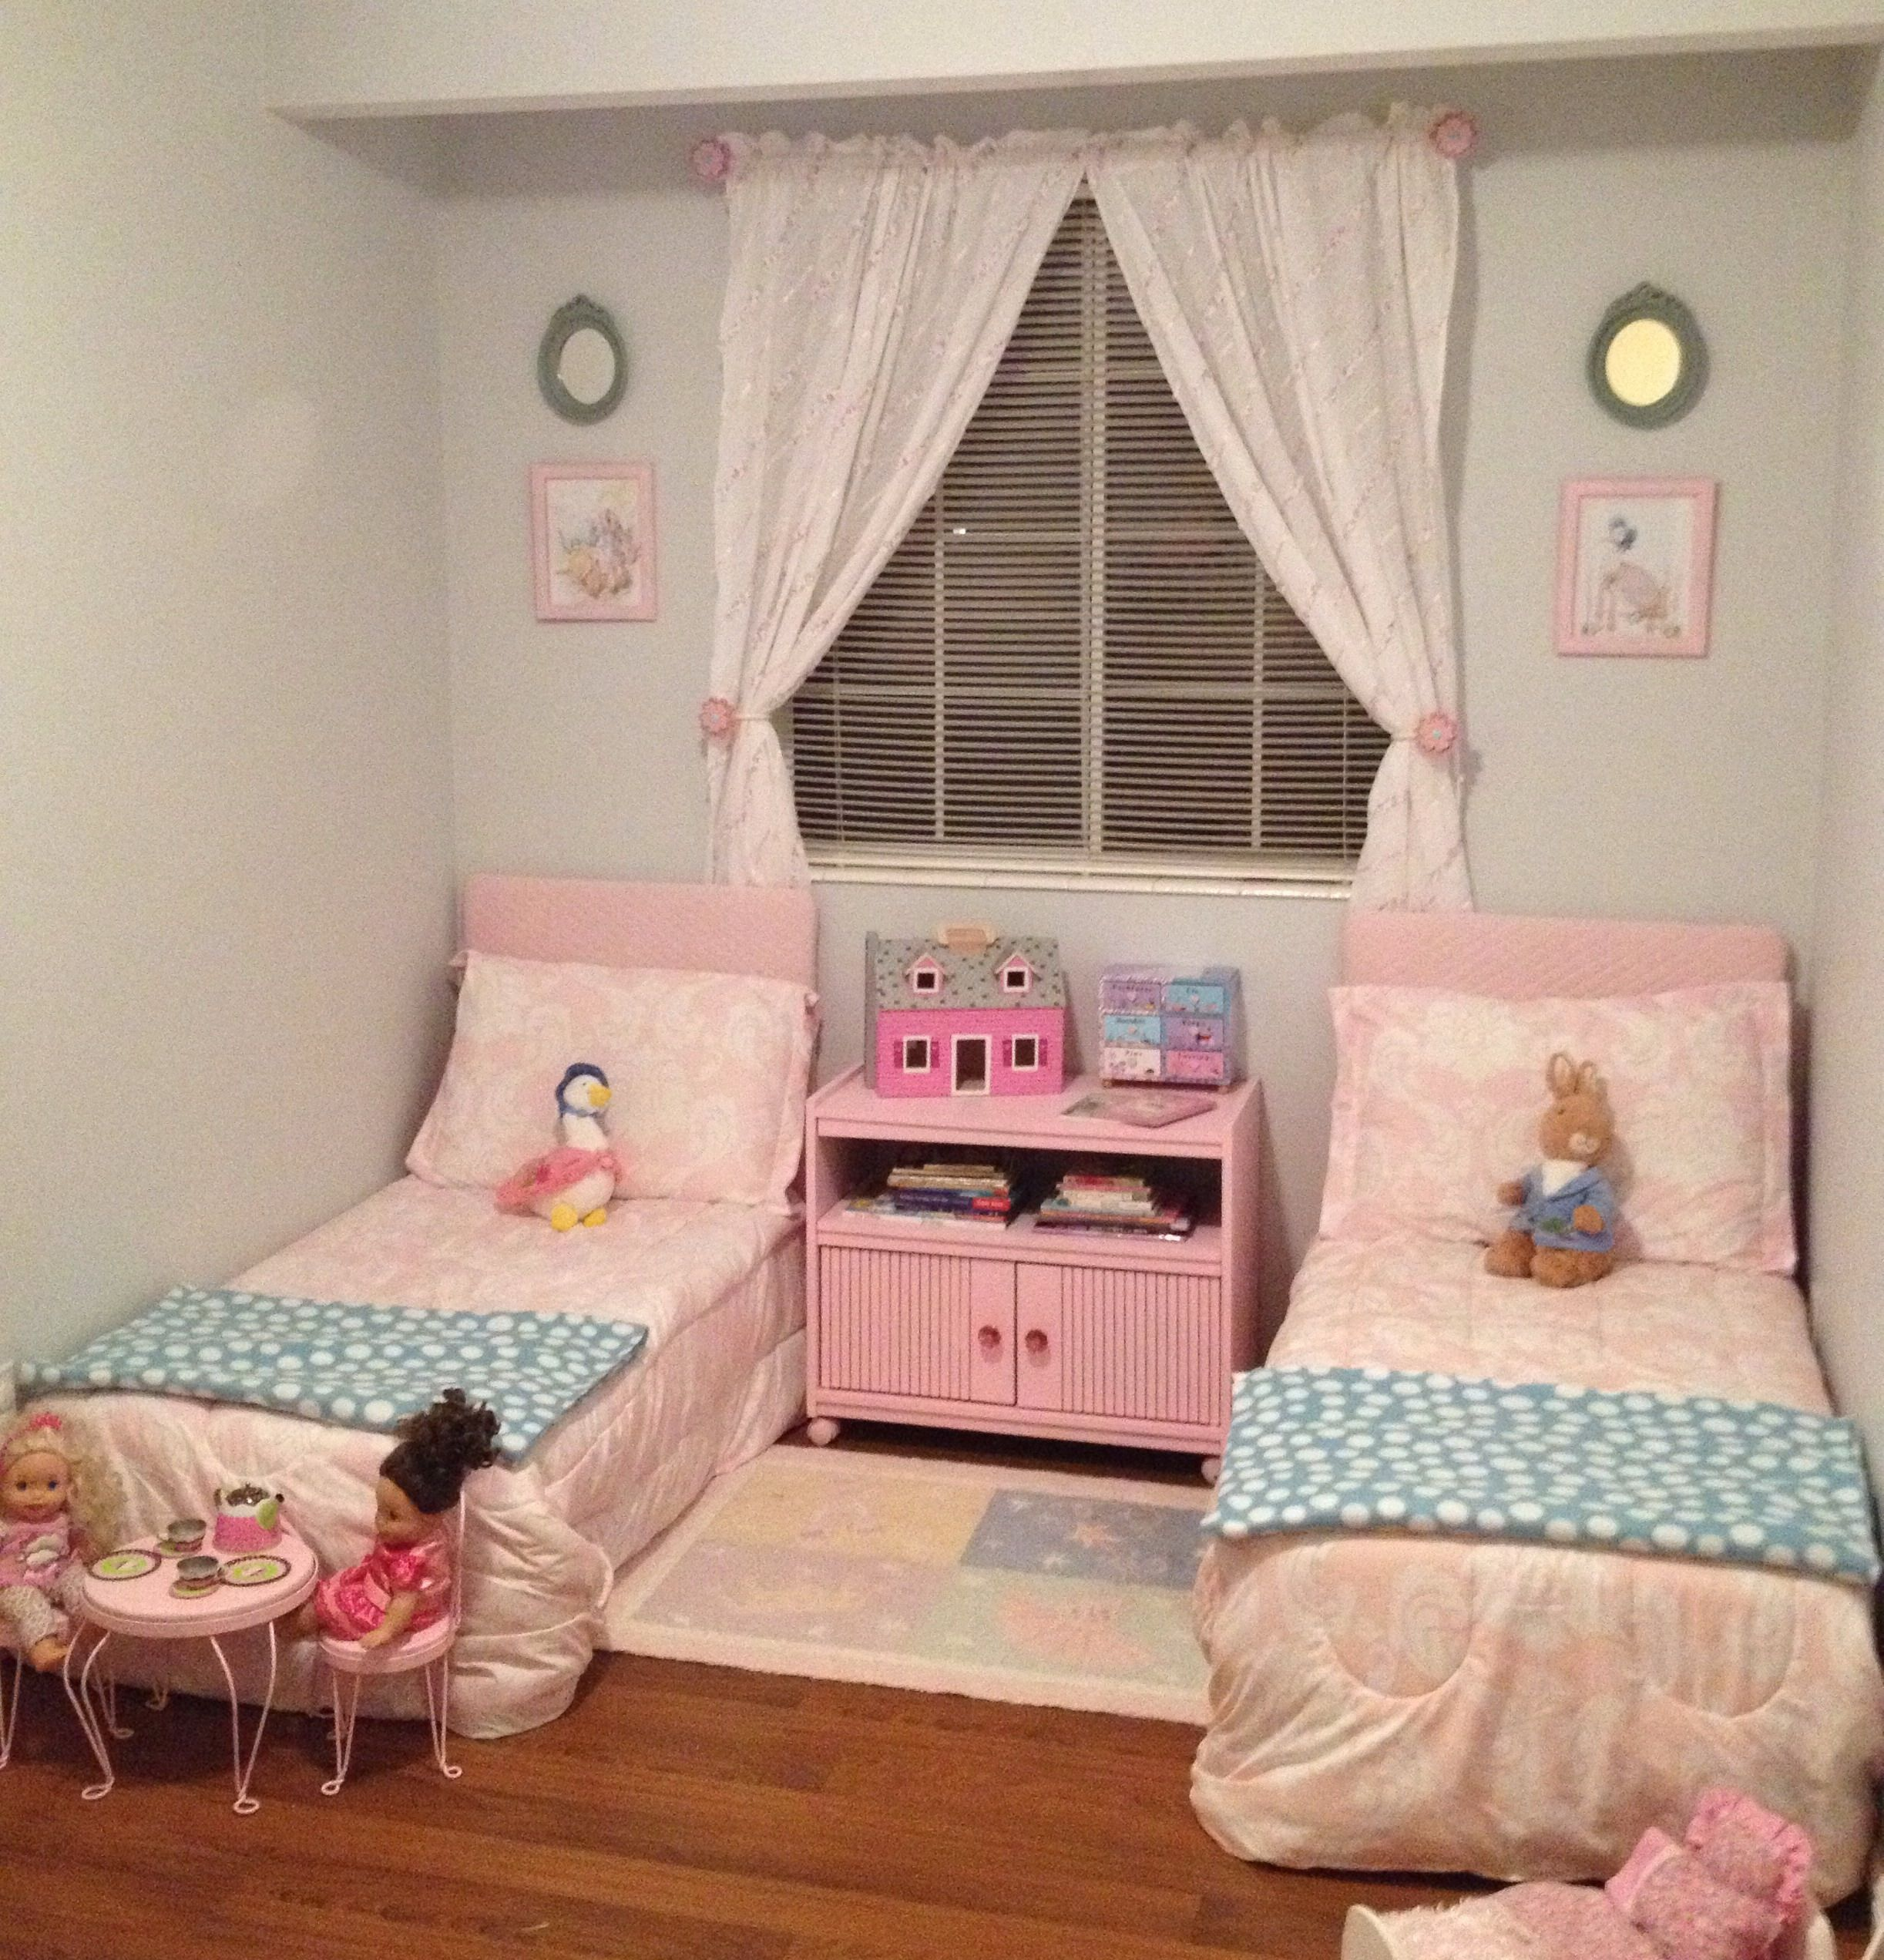 Two girls bedroom ideas bedroom small bedroom ideas for - Small room ideas for girl ...